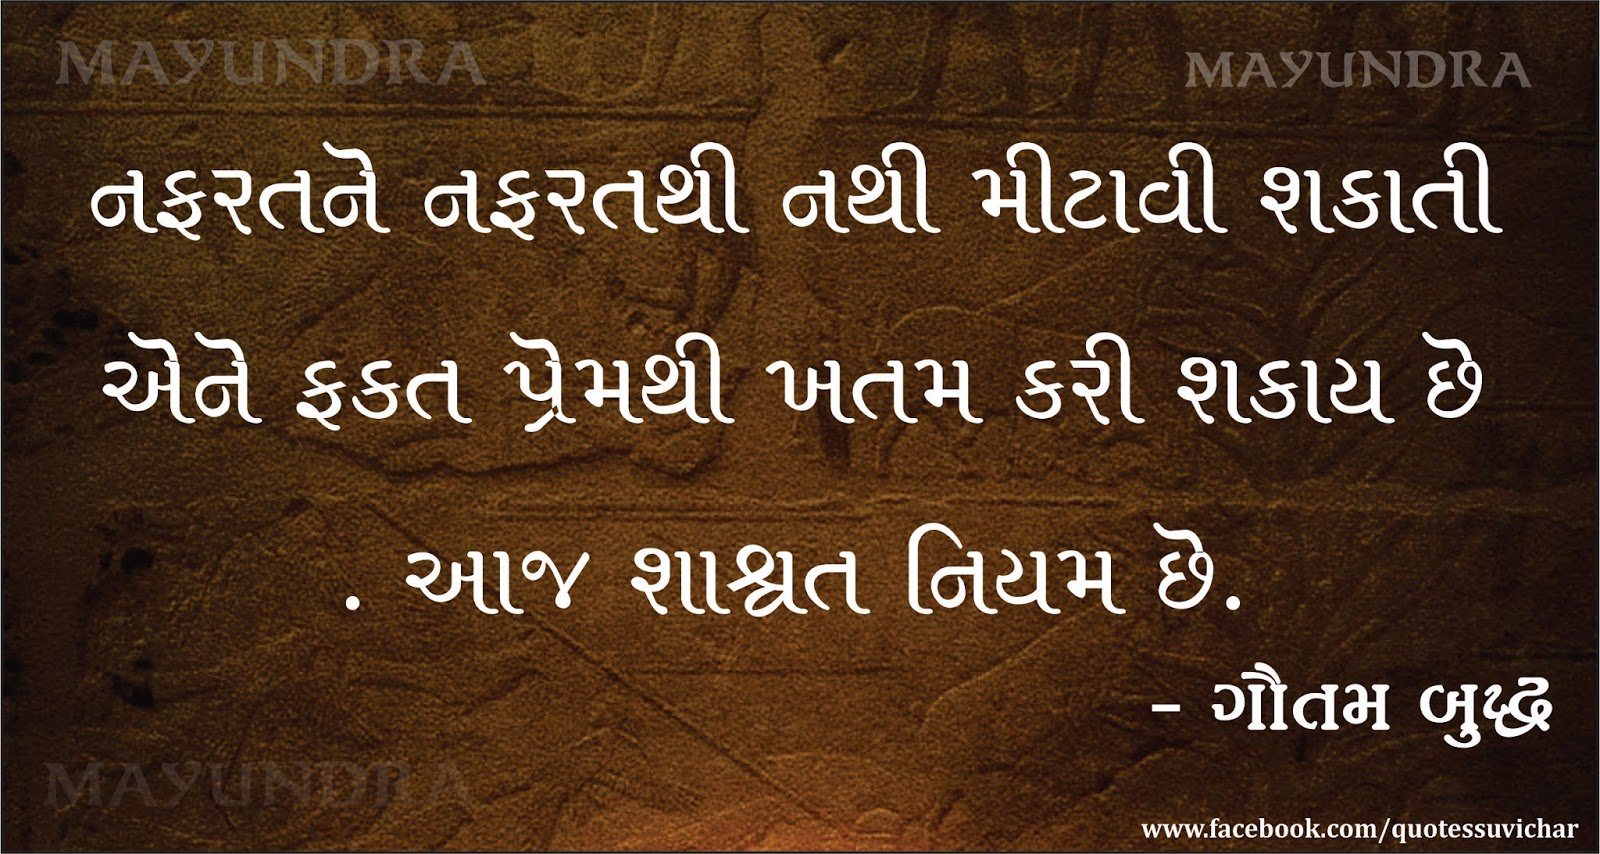 Gujarati Quotes Love Gautam Buddha Quotes India Quotes